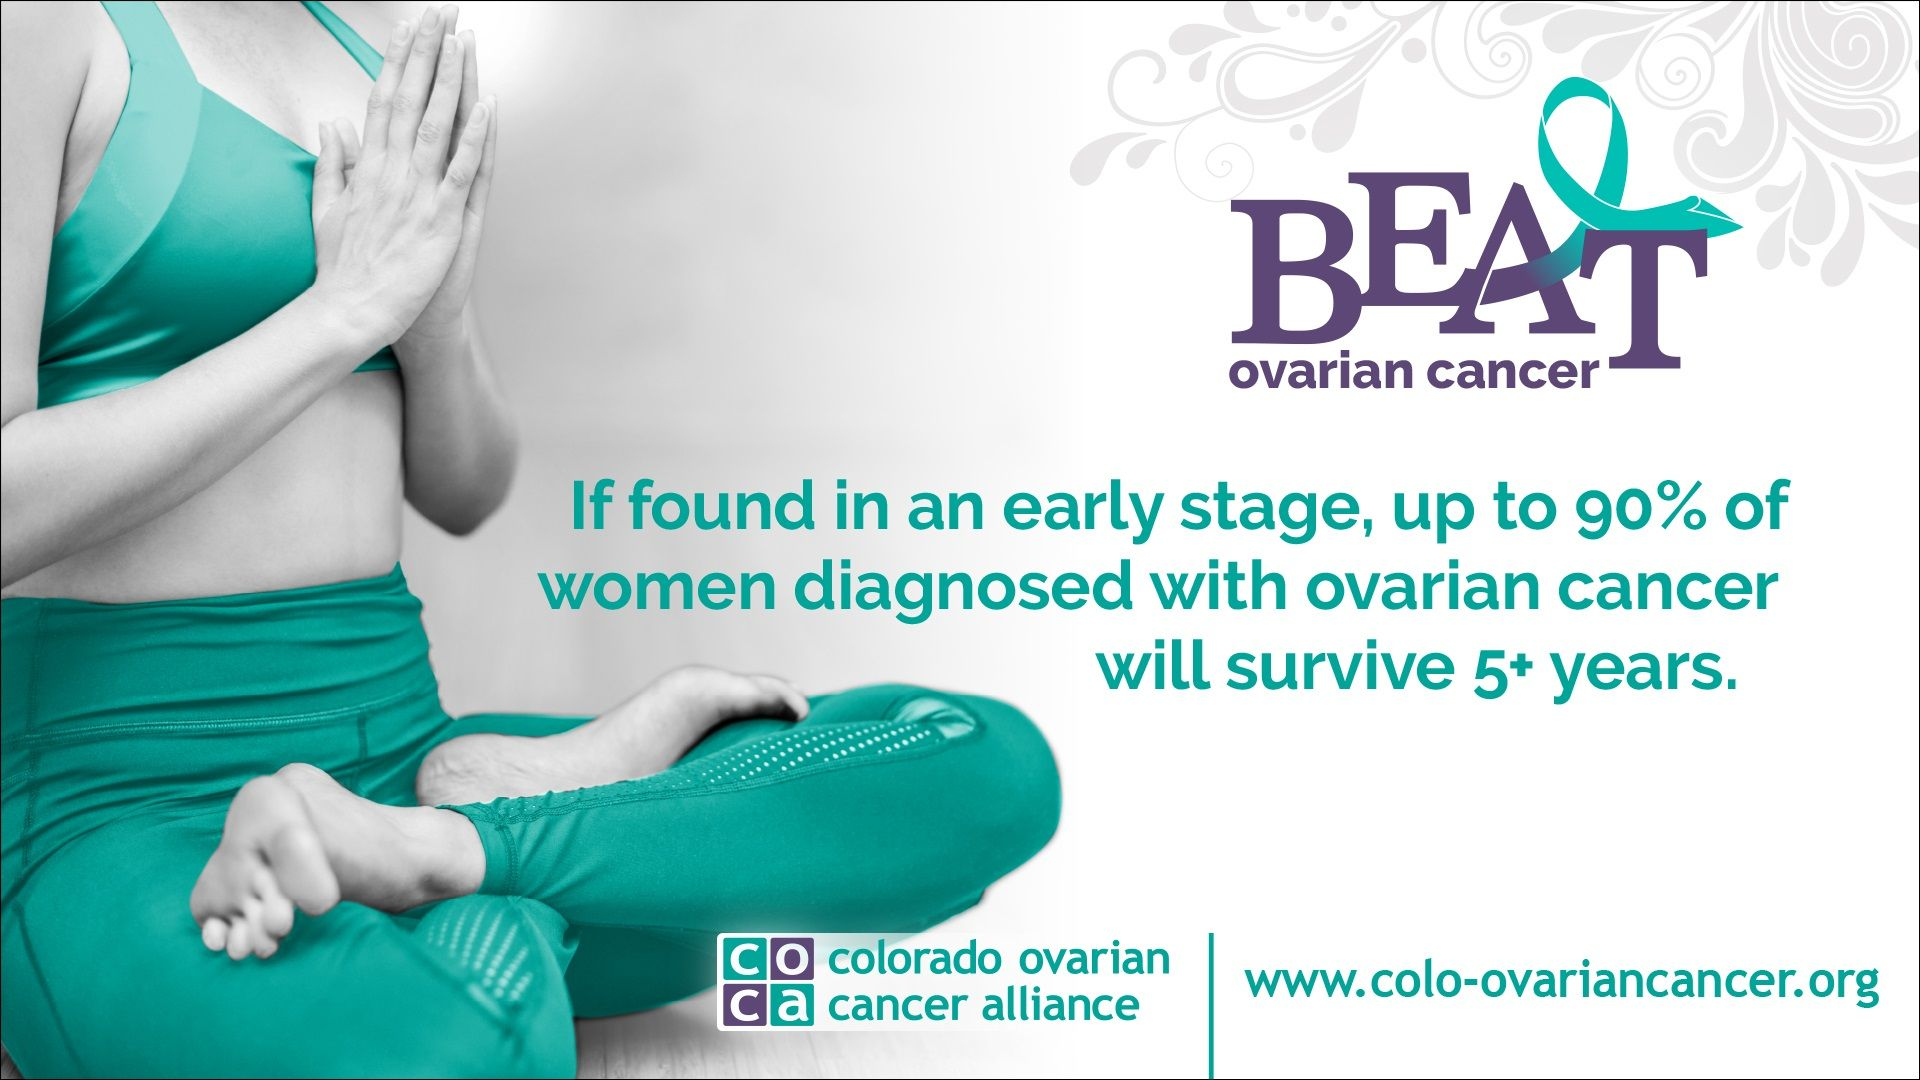 BEAT Ovarian Cancer